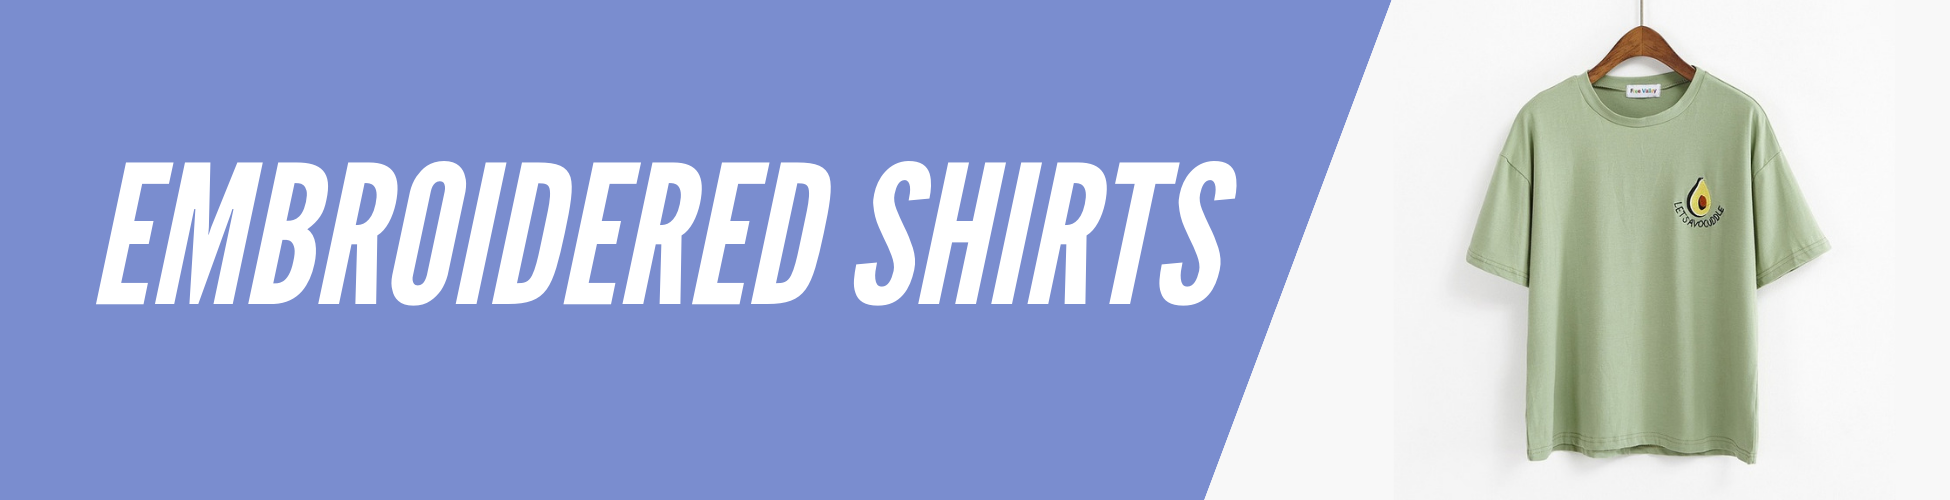 embroidered-shirts-banner.png